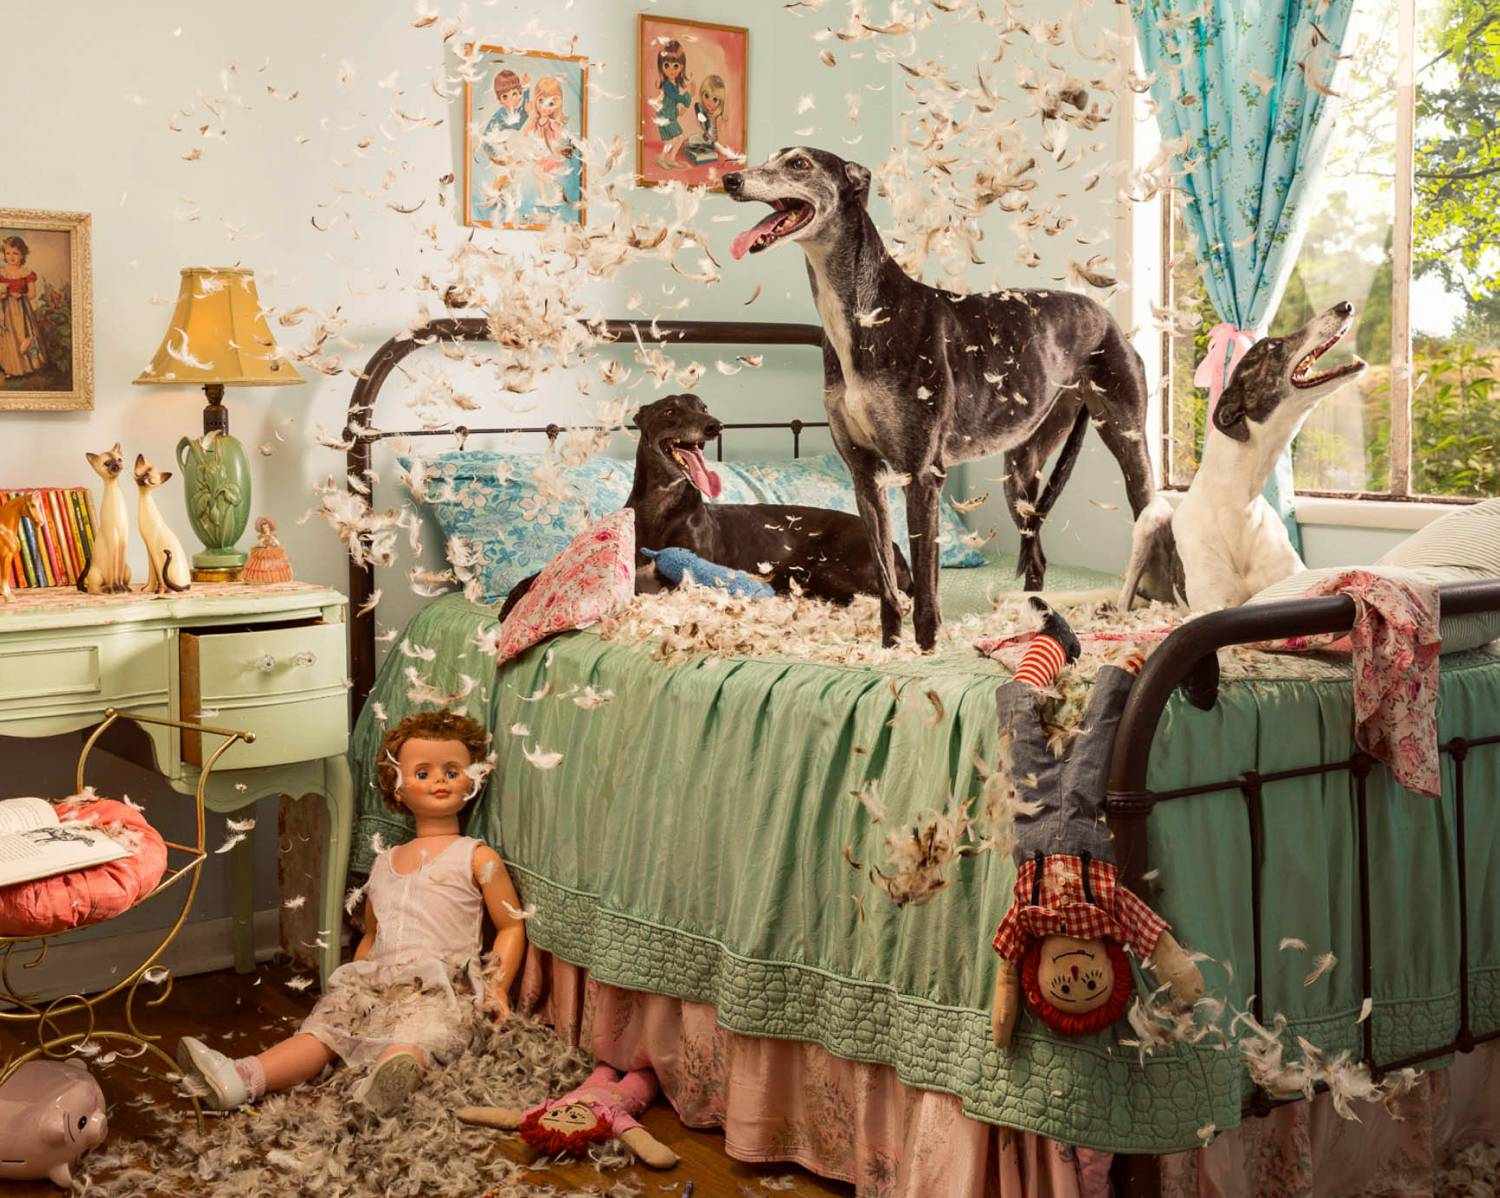 Photo: Holly Andres's photograph of greyhounds playing with feather pillows in a colorfully decorated room fills with trinkets, figurines, and dolls.